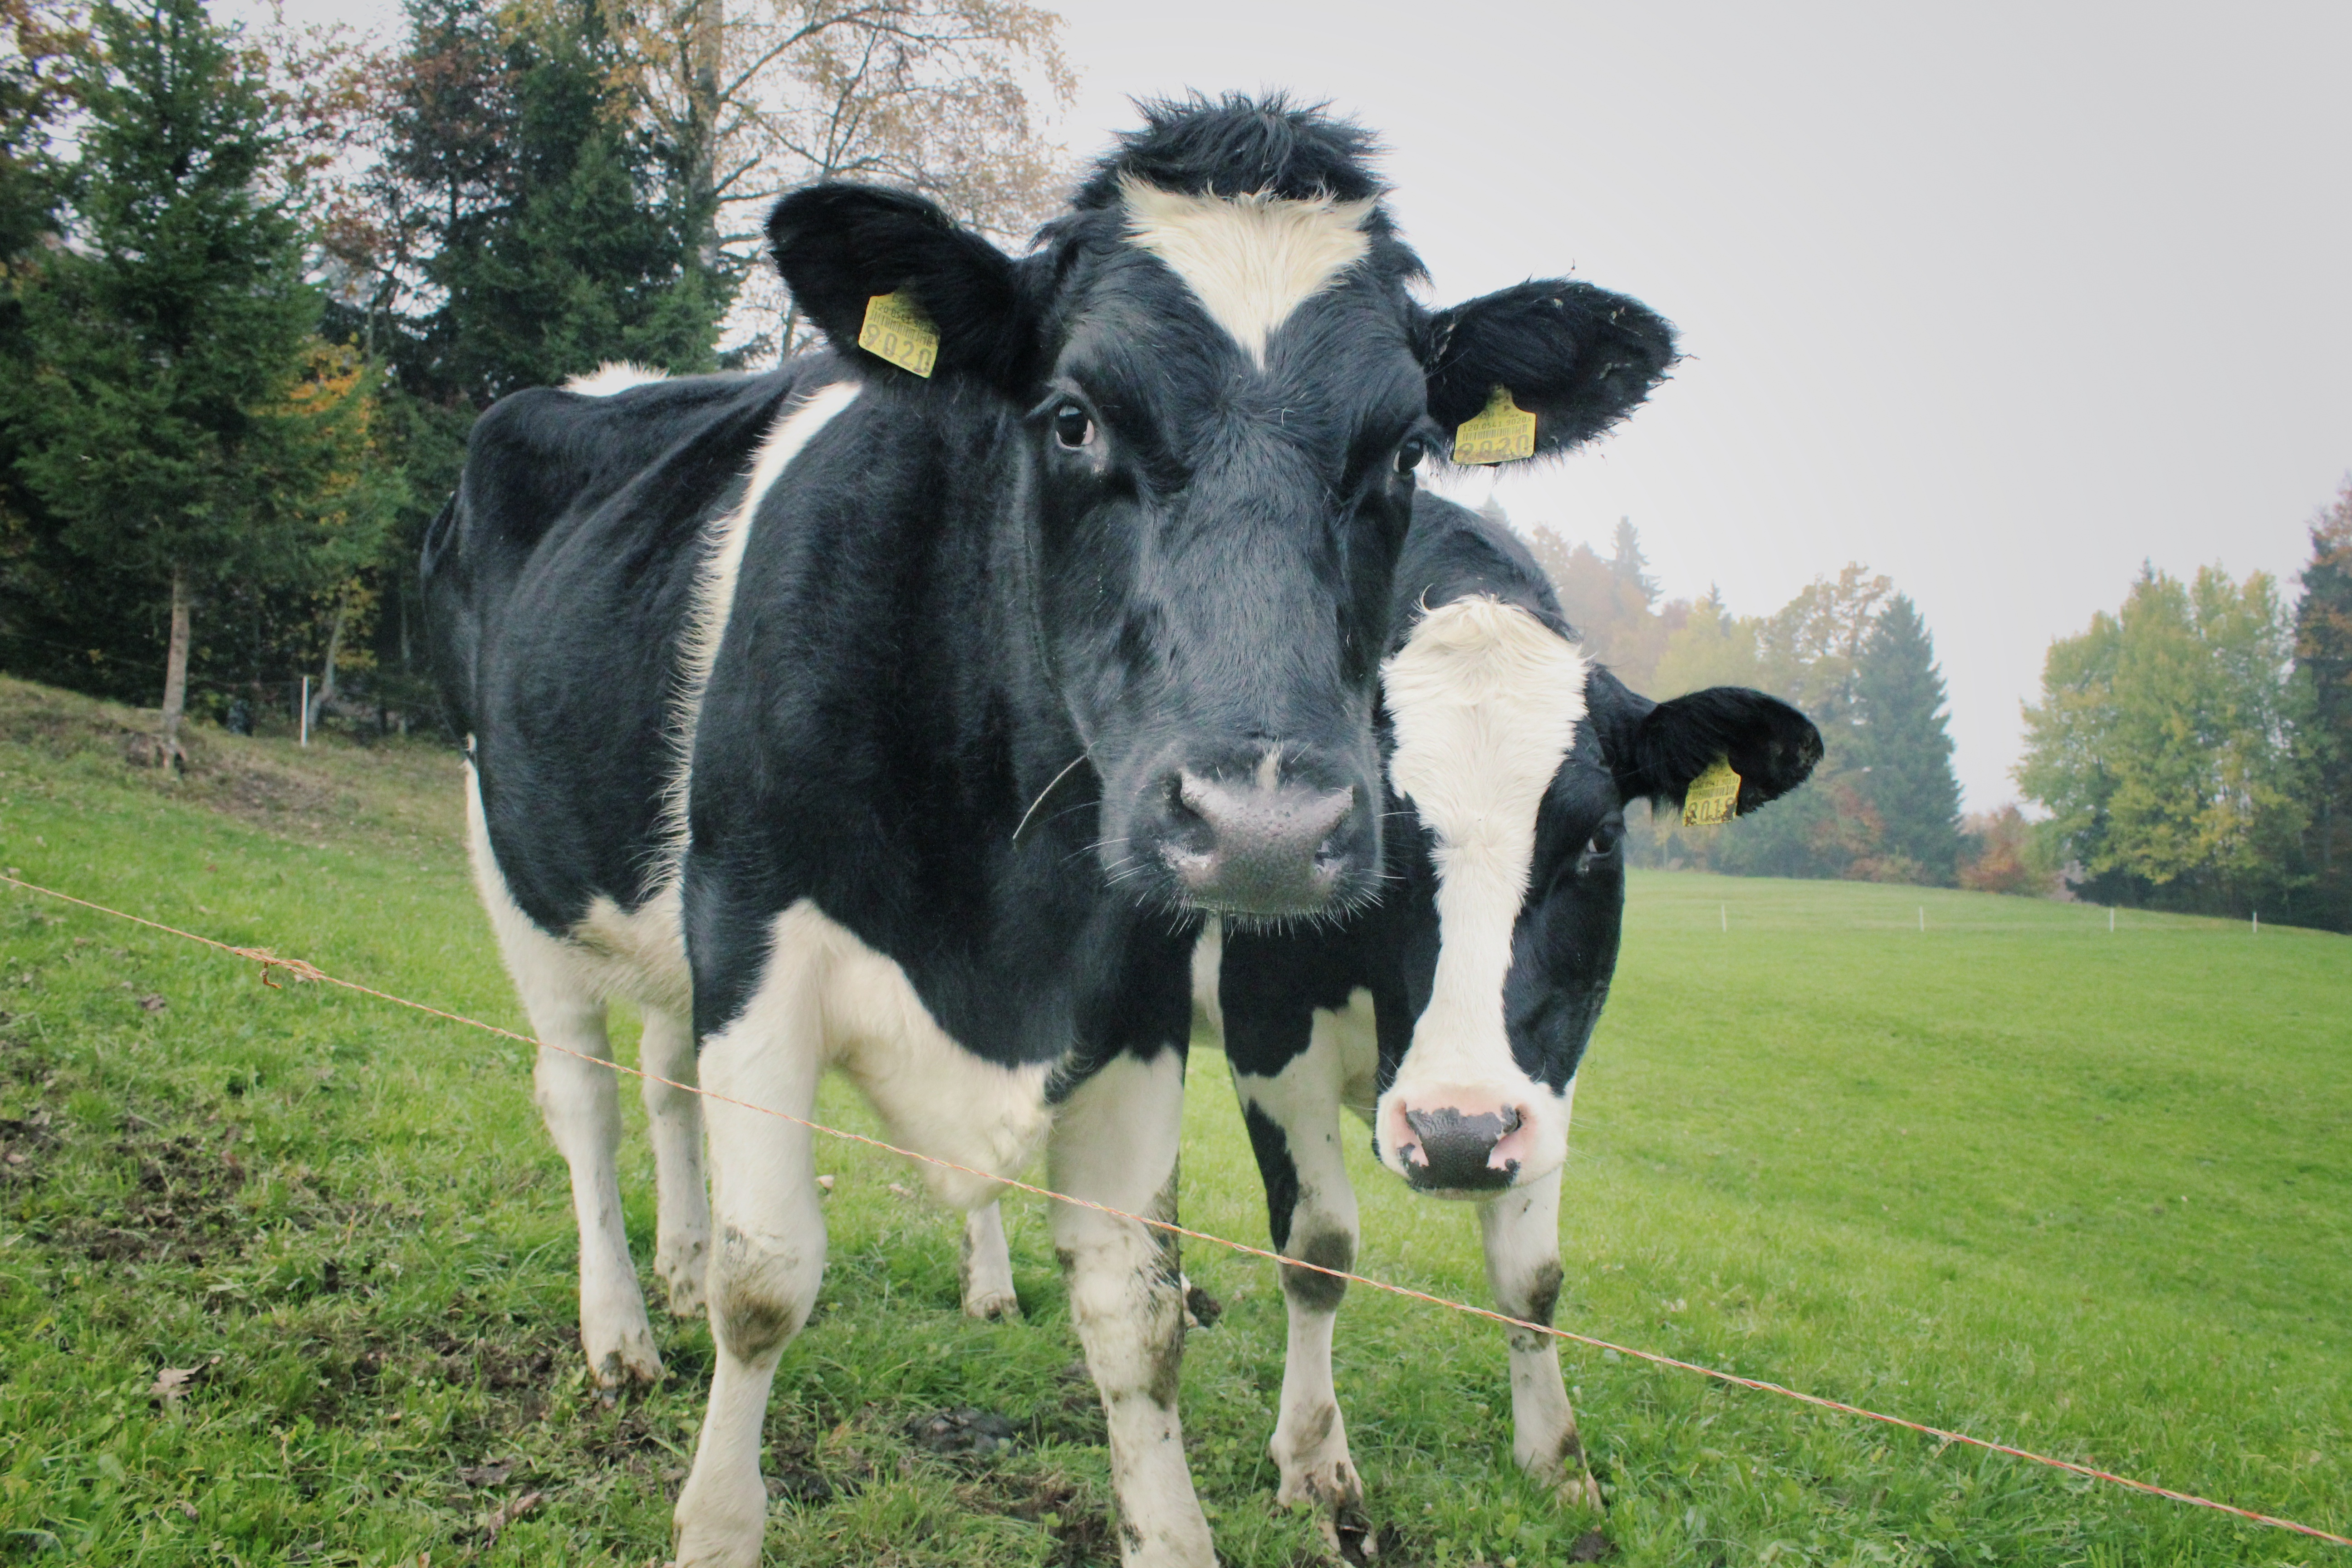 Staring cows photo